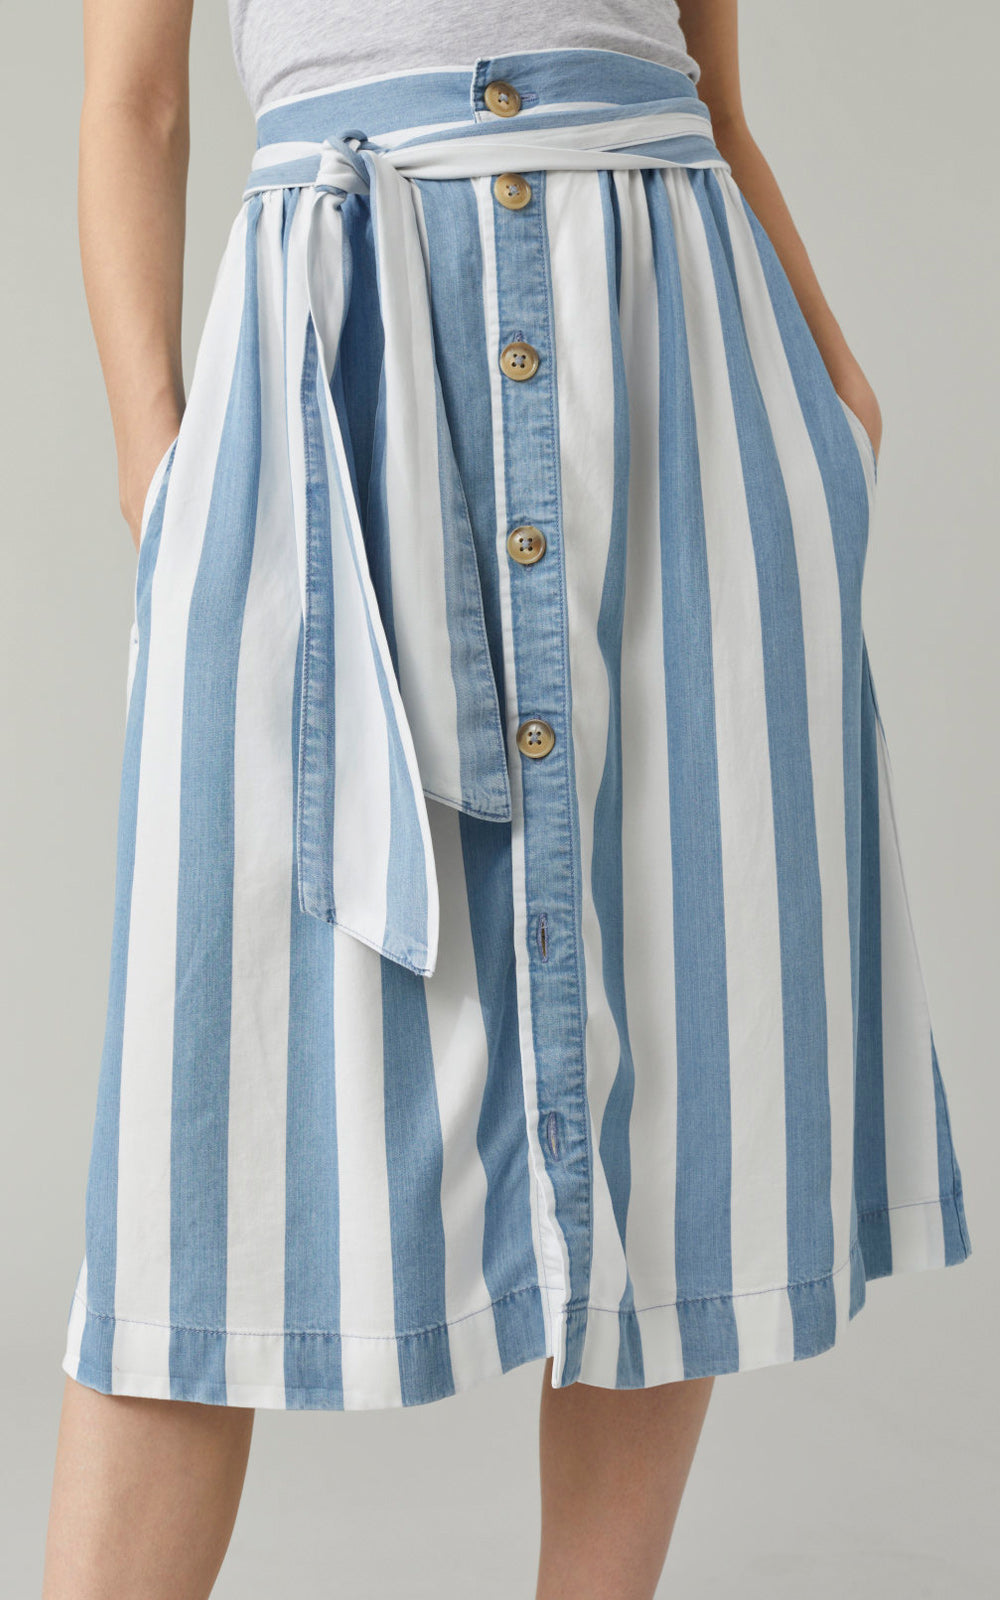 CLOSED Gillian Striped Tie Button Front Midi Skirt Light Blue Stripe